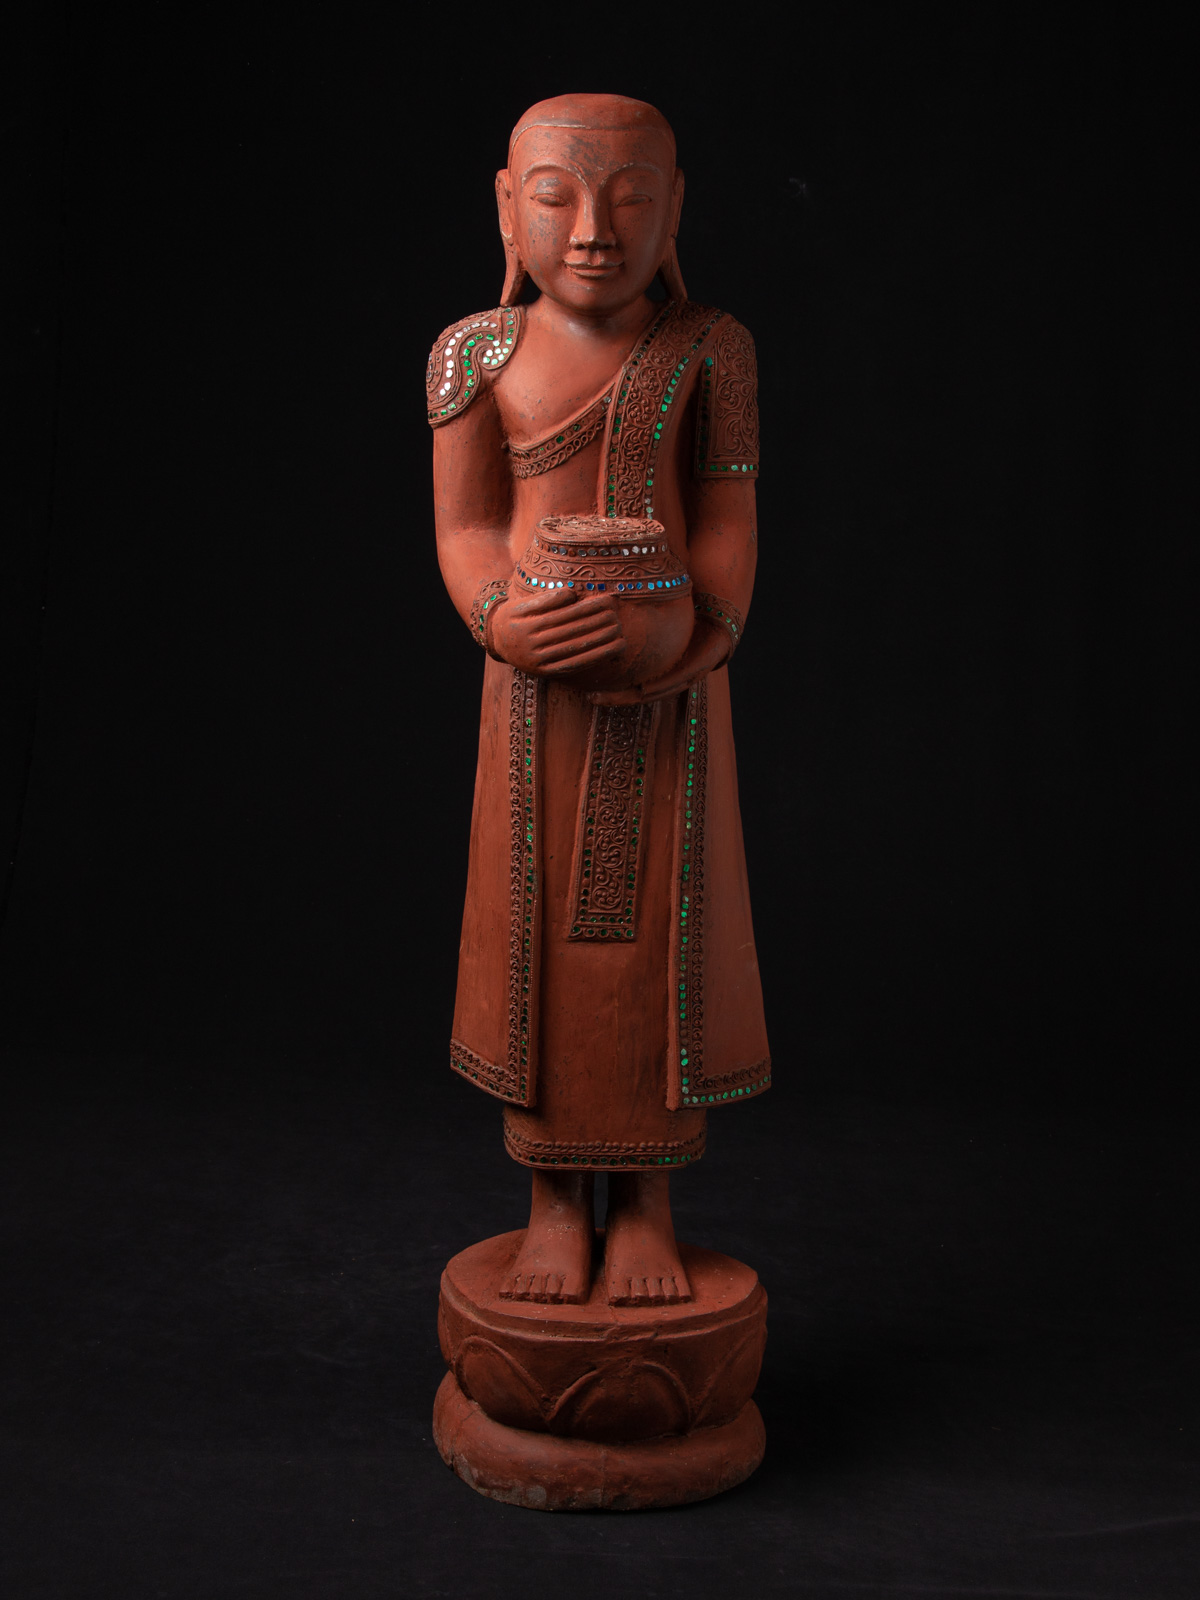 Old wooden monk statue from Burma made from Wood